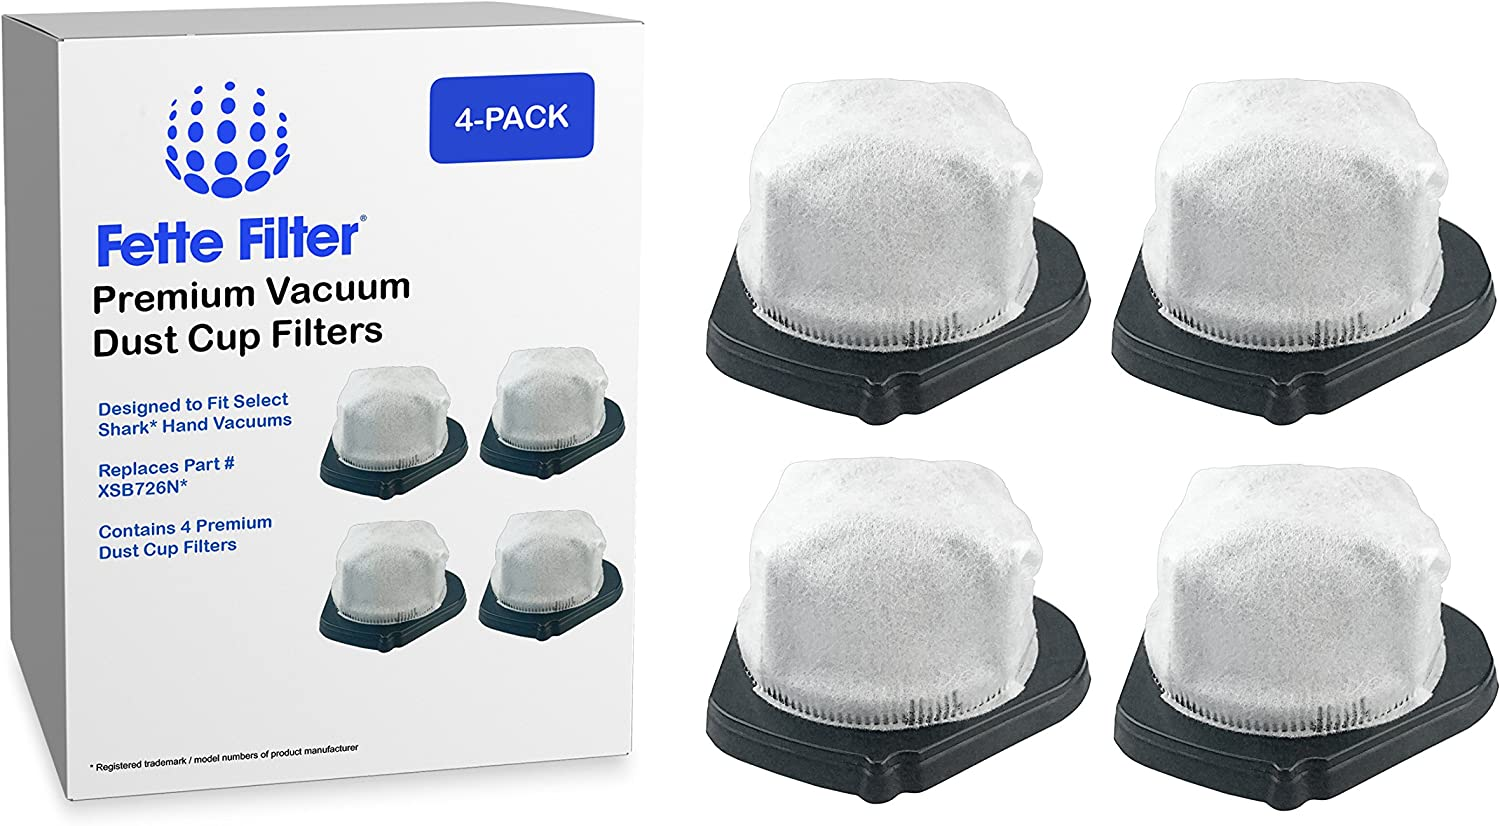 Fette Filter - Vacuum Dust Cup Filters Compatible with Shark. Compare to Part # XSB726N